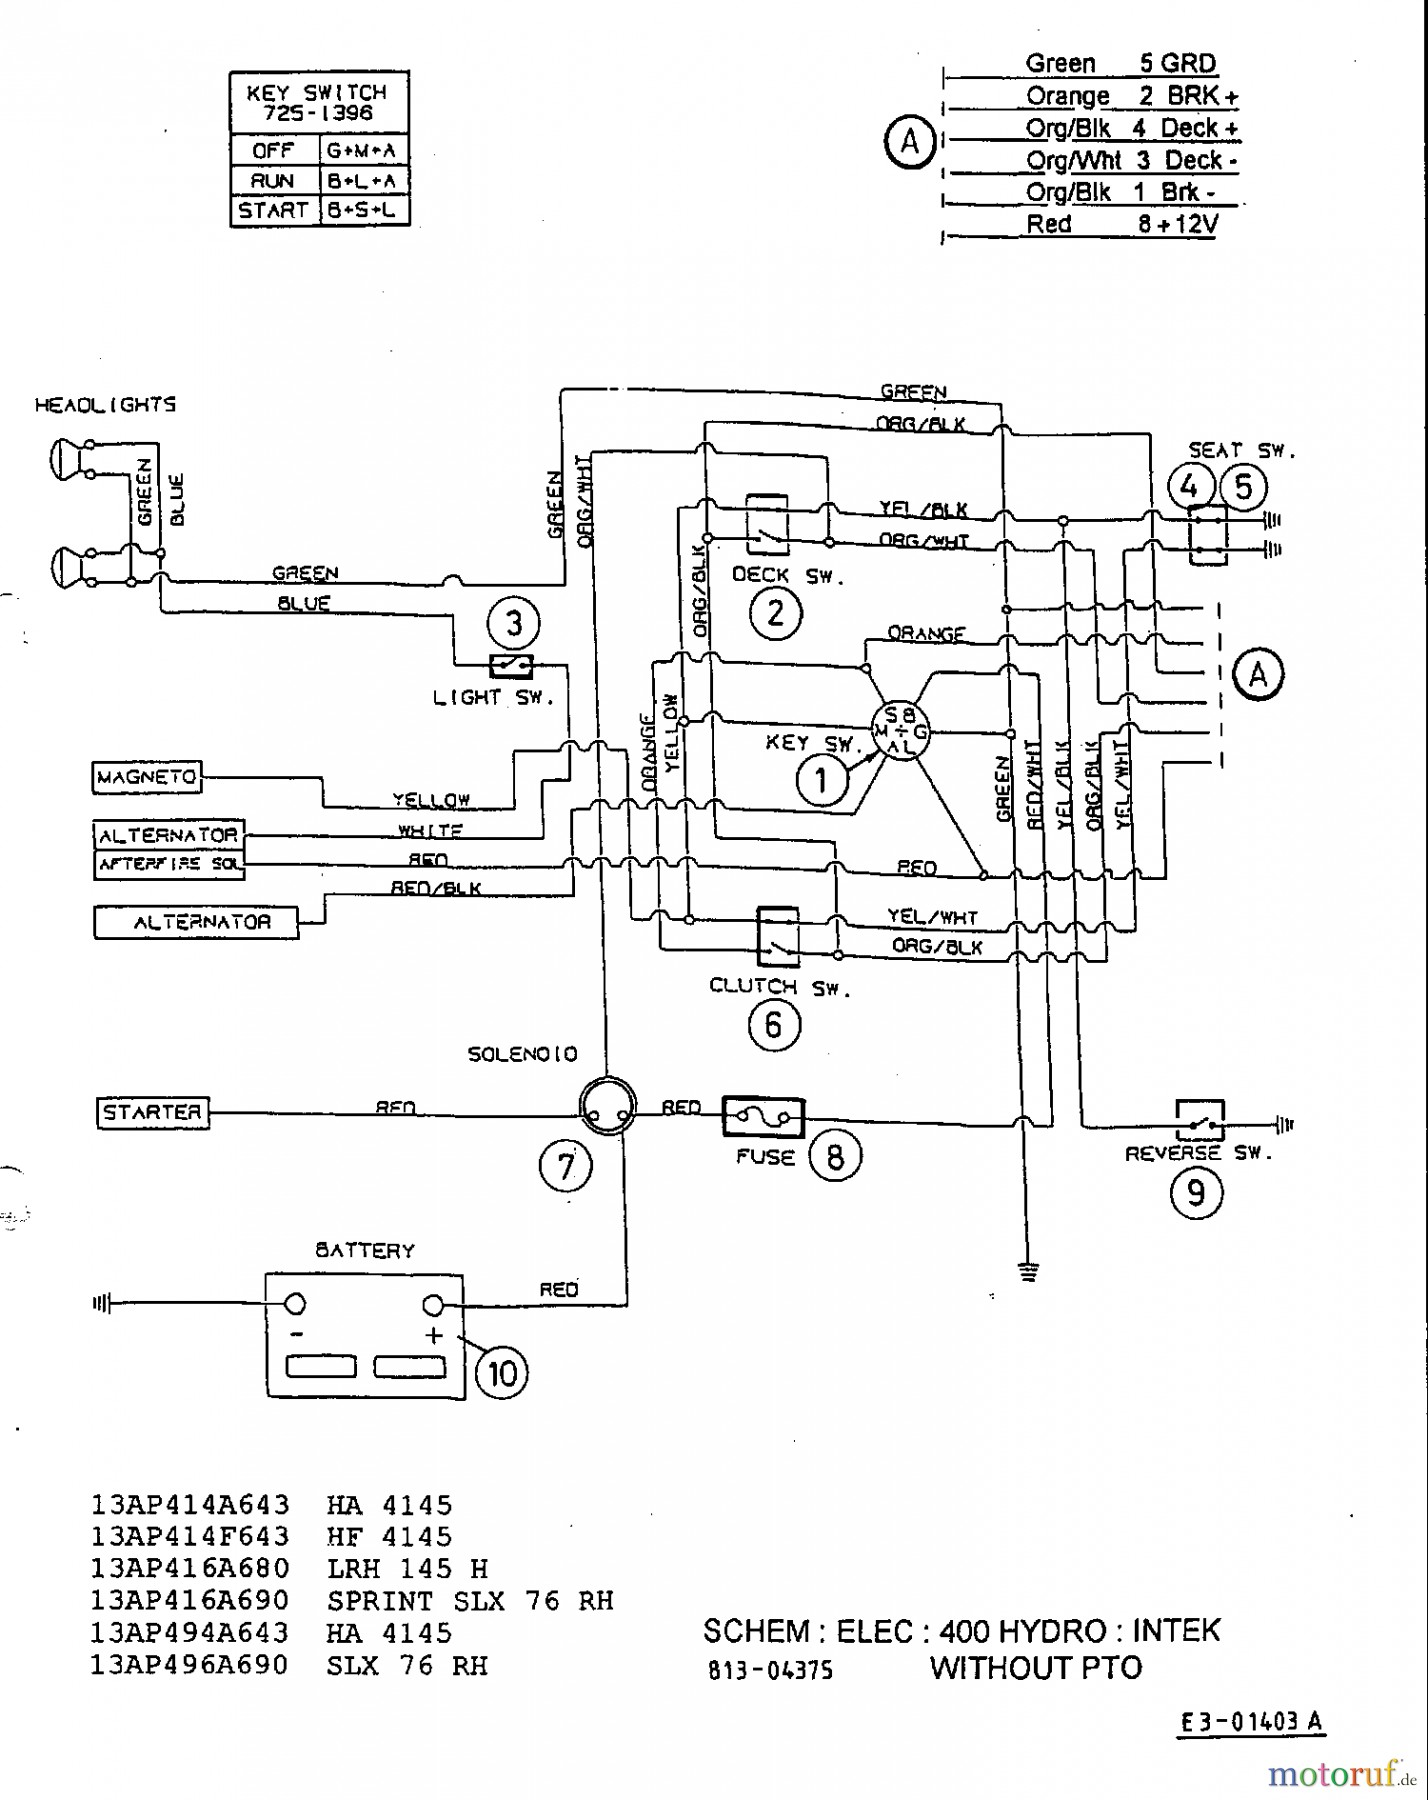 Snapper Rear Engine Rider Wiring Diagram Lawn Mower Ignition Switch On Model Nzm Kwv Riding Genuine Related Post